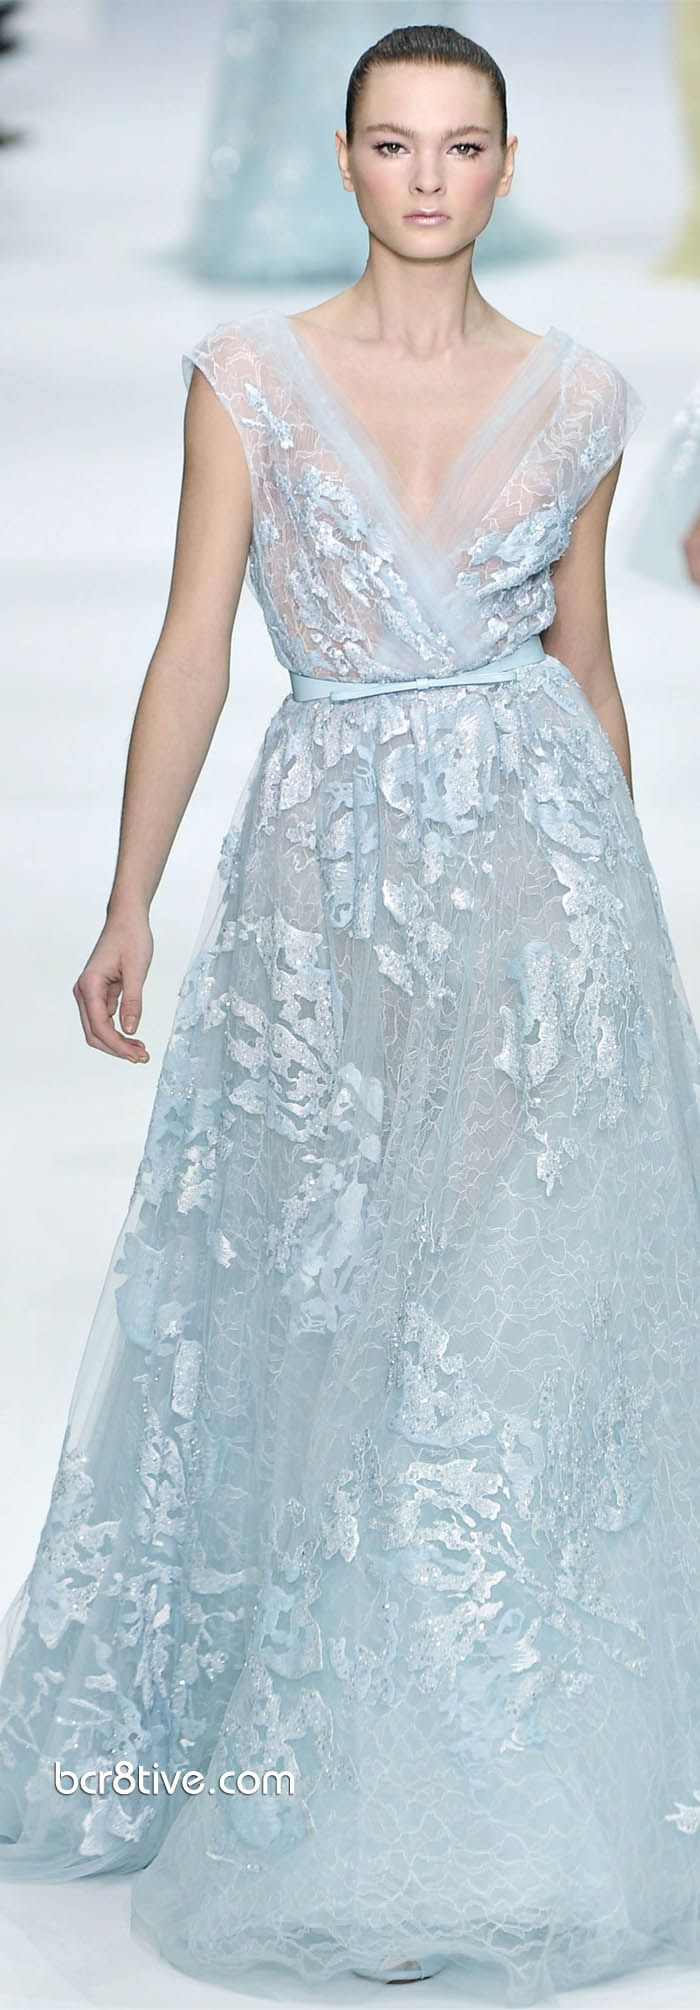 best ellie saab images by anca apostol on pinterest party